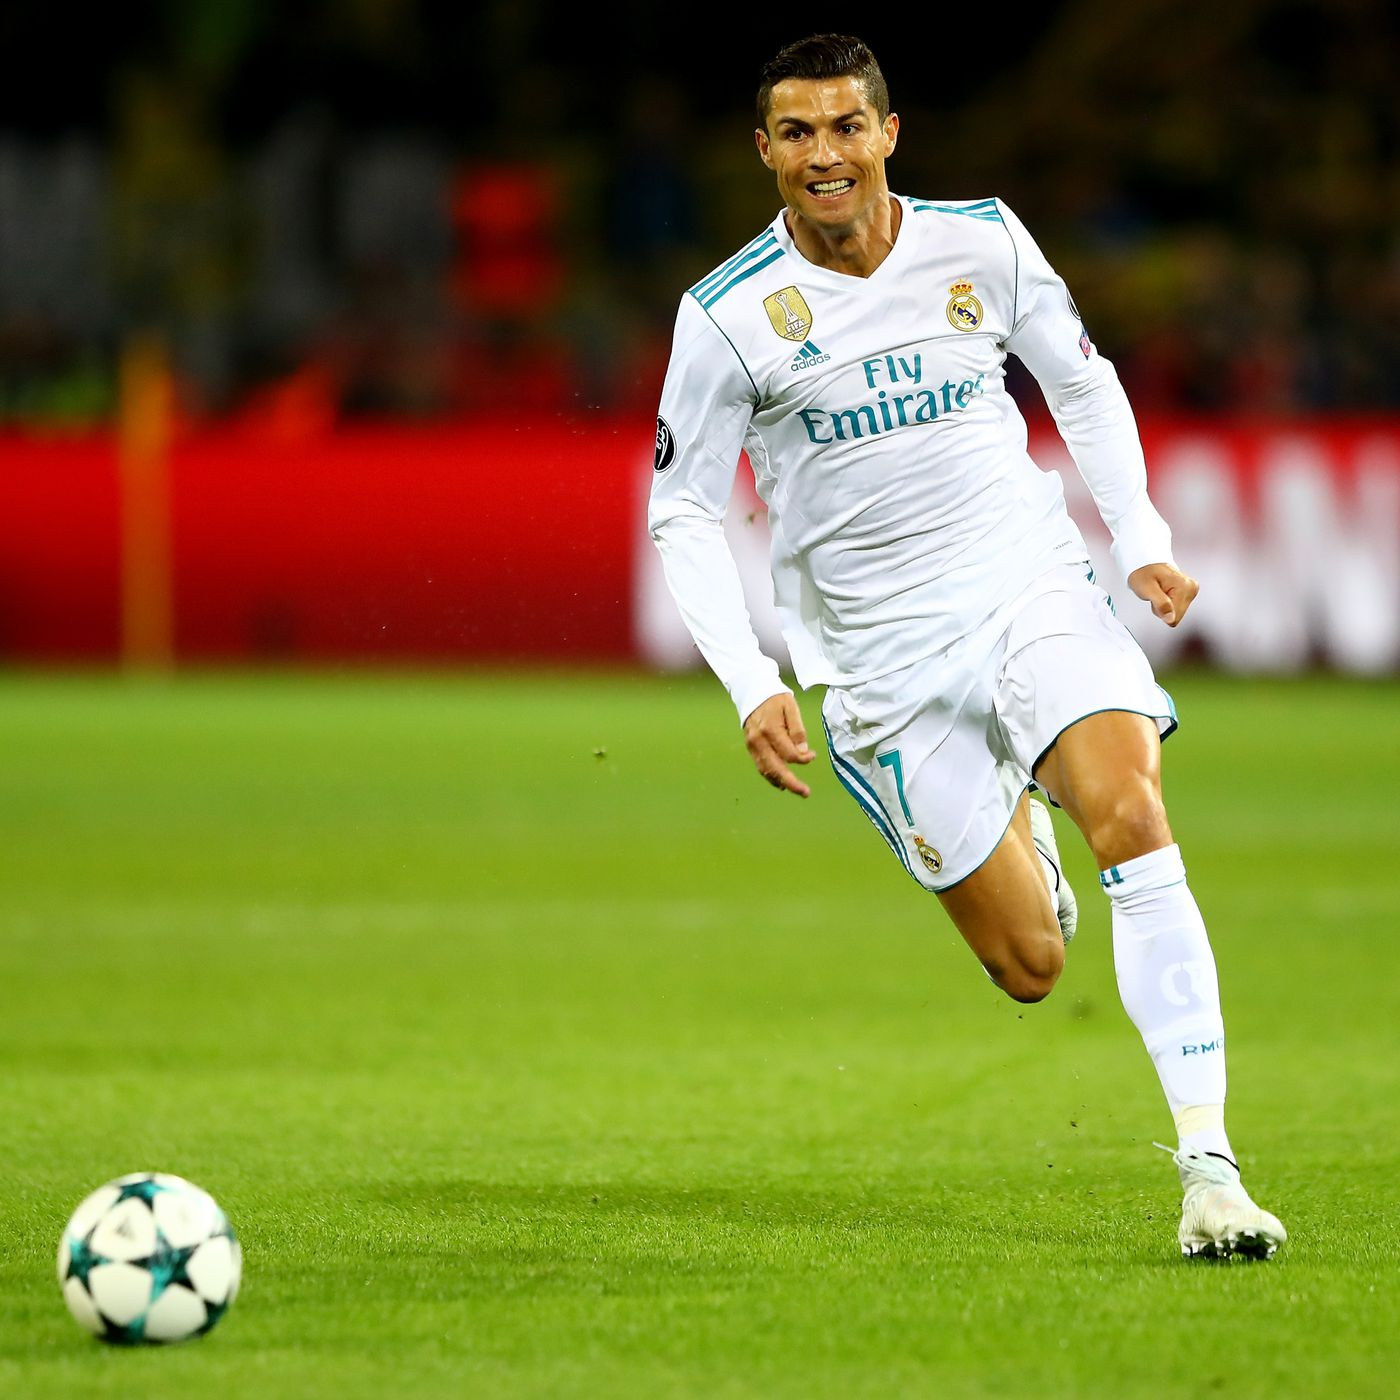 Real Madrid Vs Espanyol Live Stream Time Tv Channel And How To Watch Online Sbnation Com